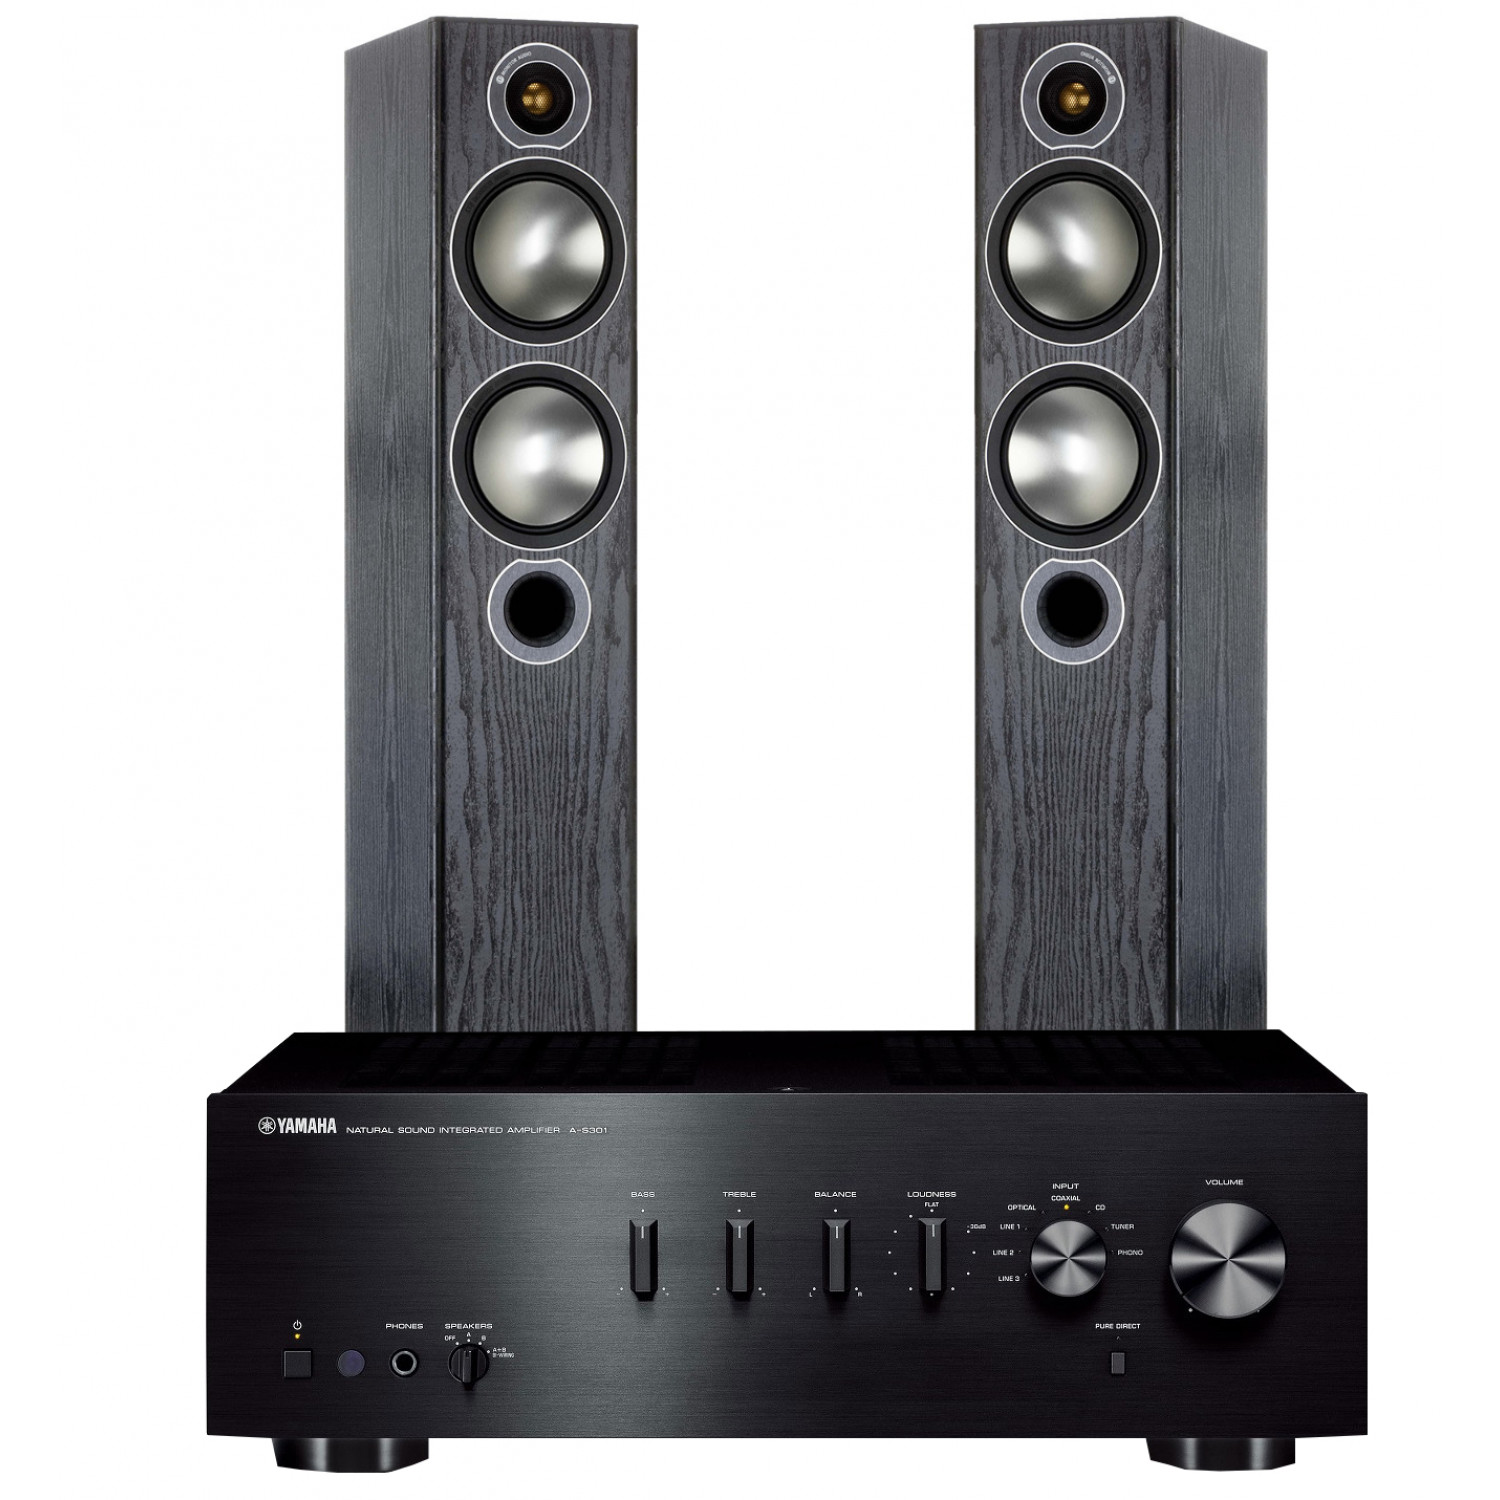 Yamaha A S301 Integrated Amplifier With Monitor Audio Bronze